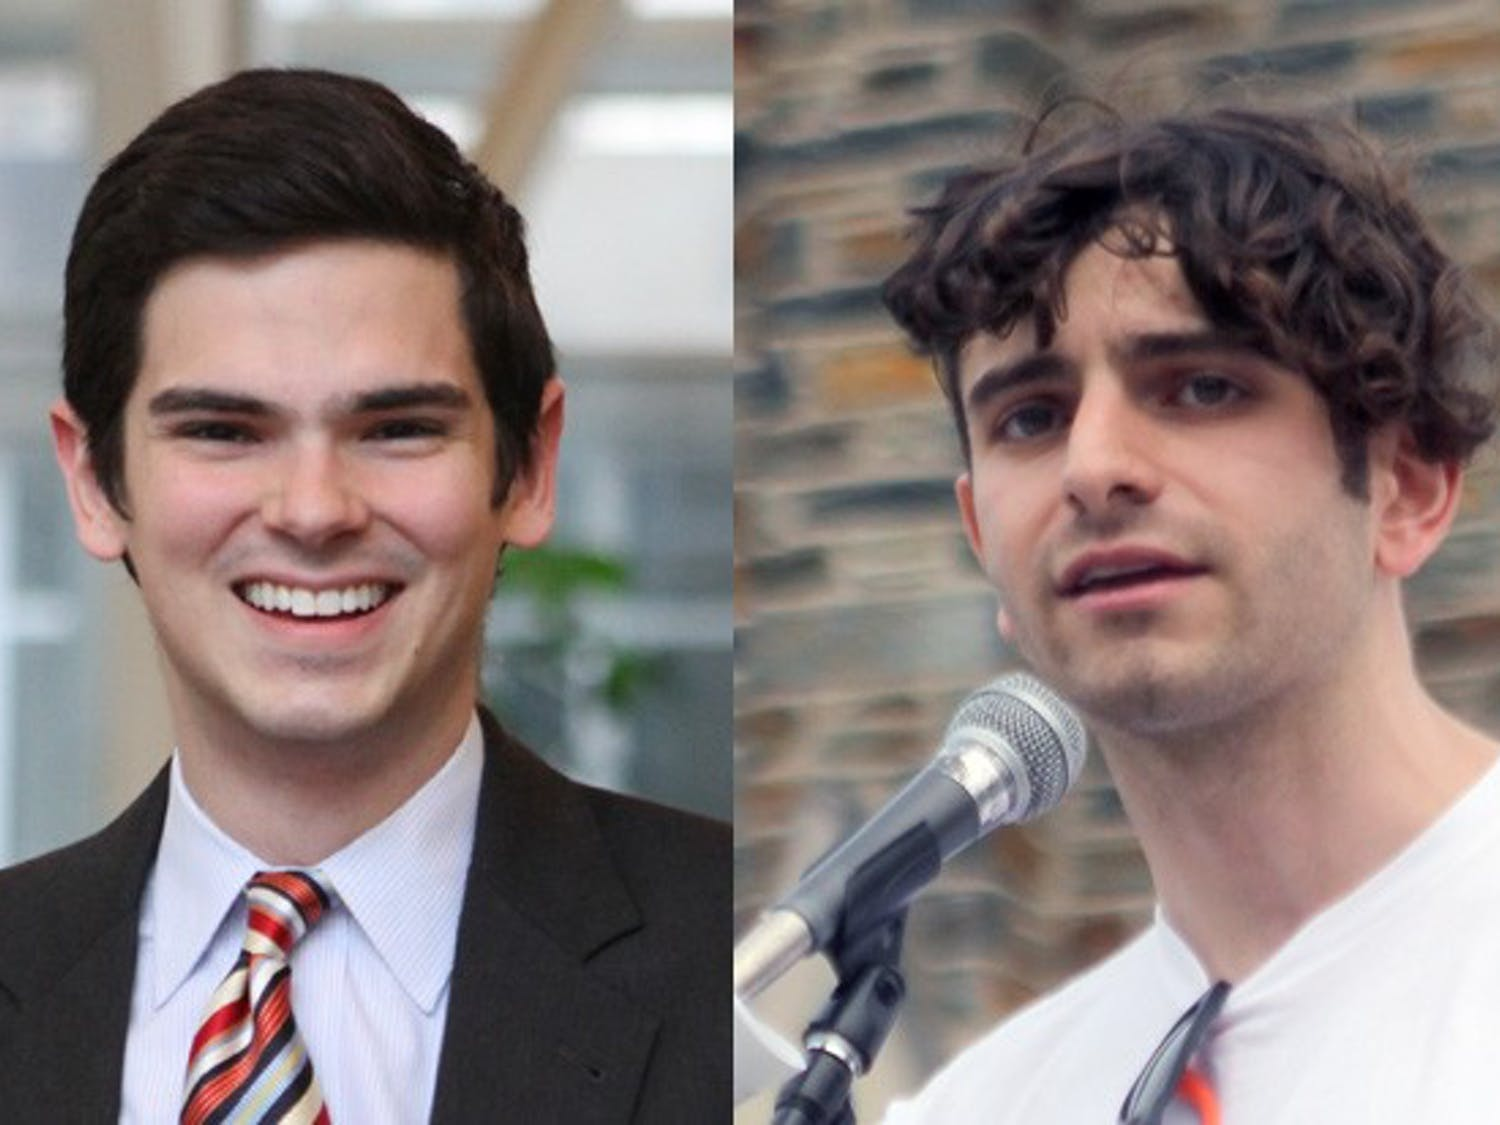 Juniors Jacob Tobia and Patrick Oathout have received 2013 Truman Scholarships, which recognize a dedication to public service.